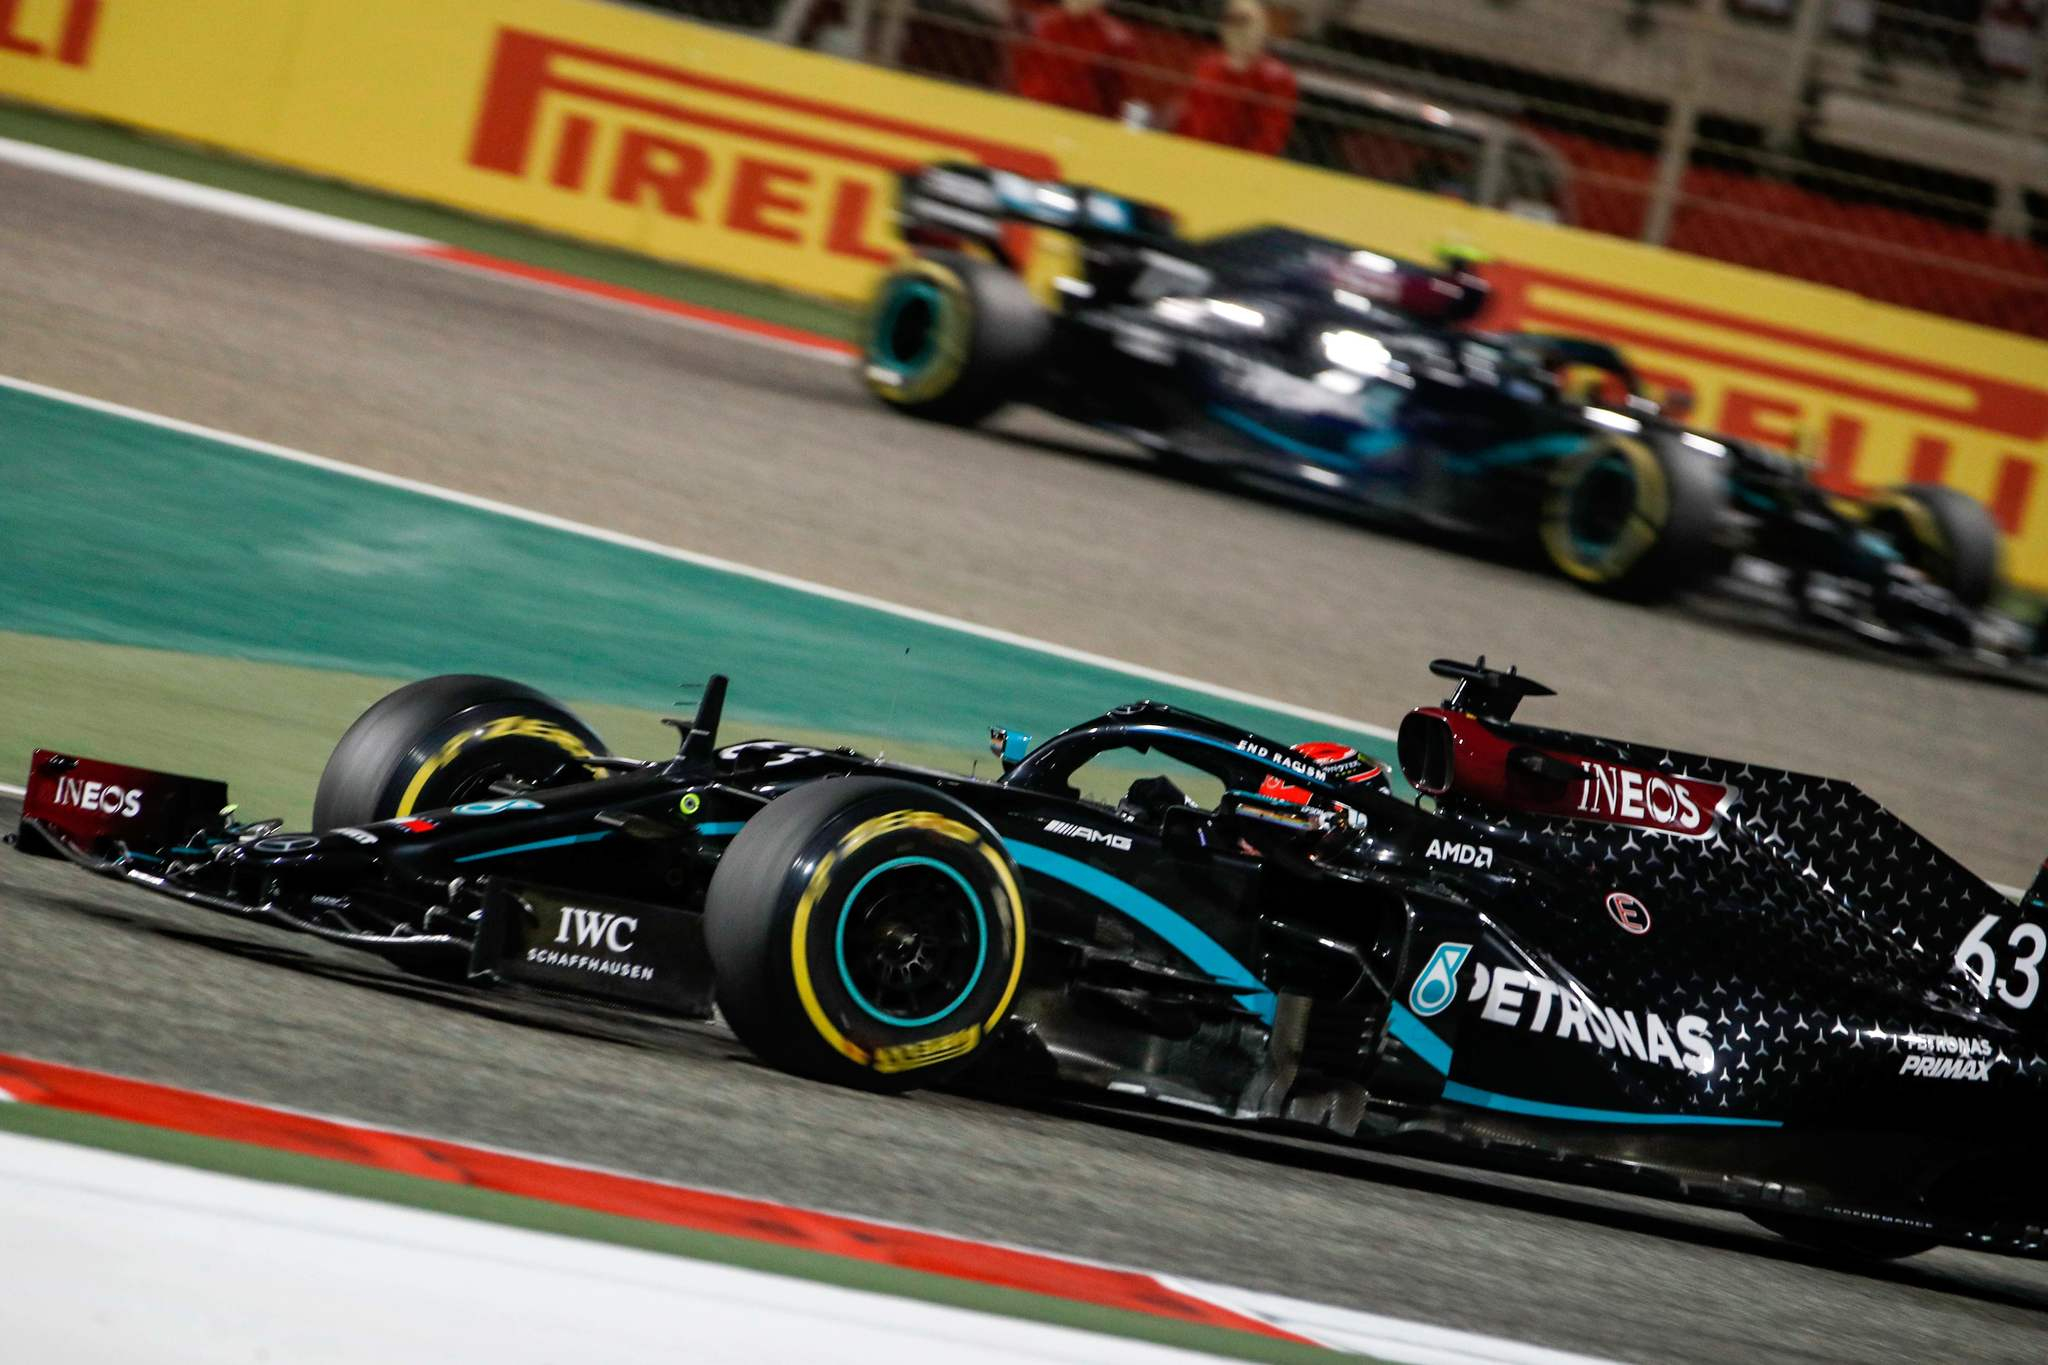 Mercedes British driver lt;HIT gt;George lt;/HIT gt; lt;HIT gt;Russell lt;/HIT gt; drives during the Sakhir Formula One Grand Prix at the Bahrain International Circuit in the city of Sakhir on December 6, 2020. (Photo by HAMAD I MOHAMMED / POOL / AFP)